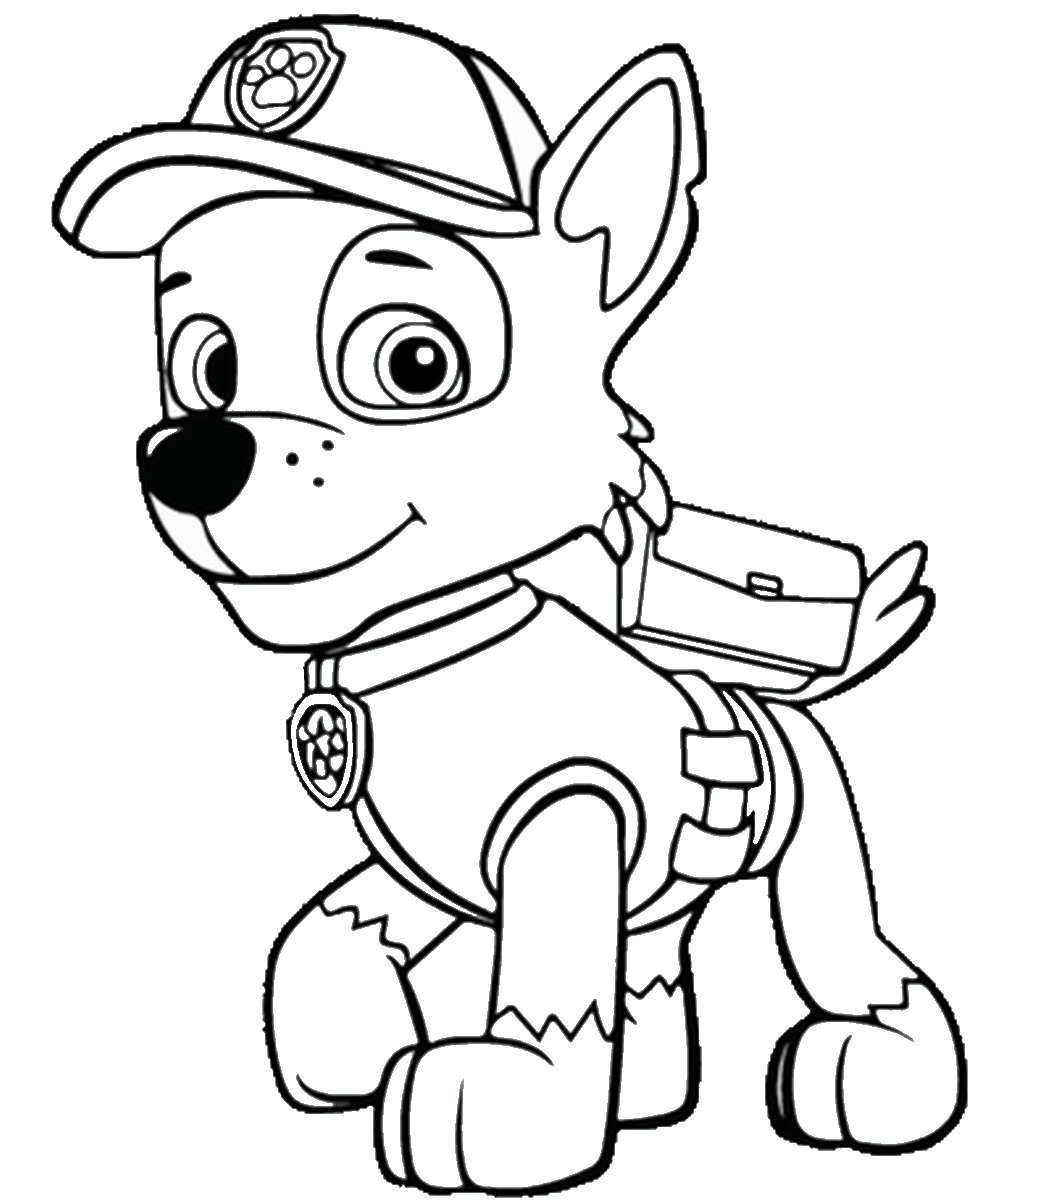 Paw Patrol Coloring Pages Best Coloring Pages For Kids Paw Patrol Coloring Pages Paw Patrol Coloring Cartoon Coloring Pages